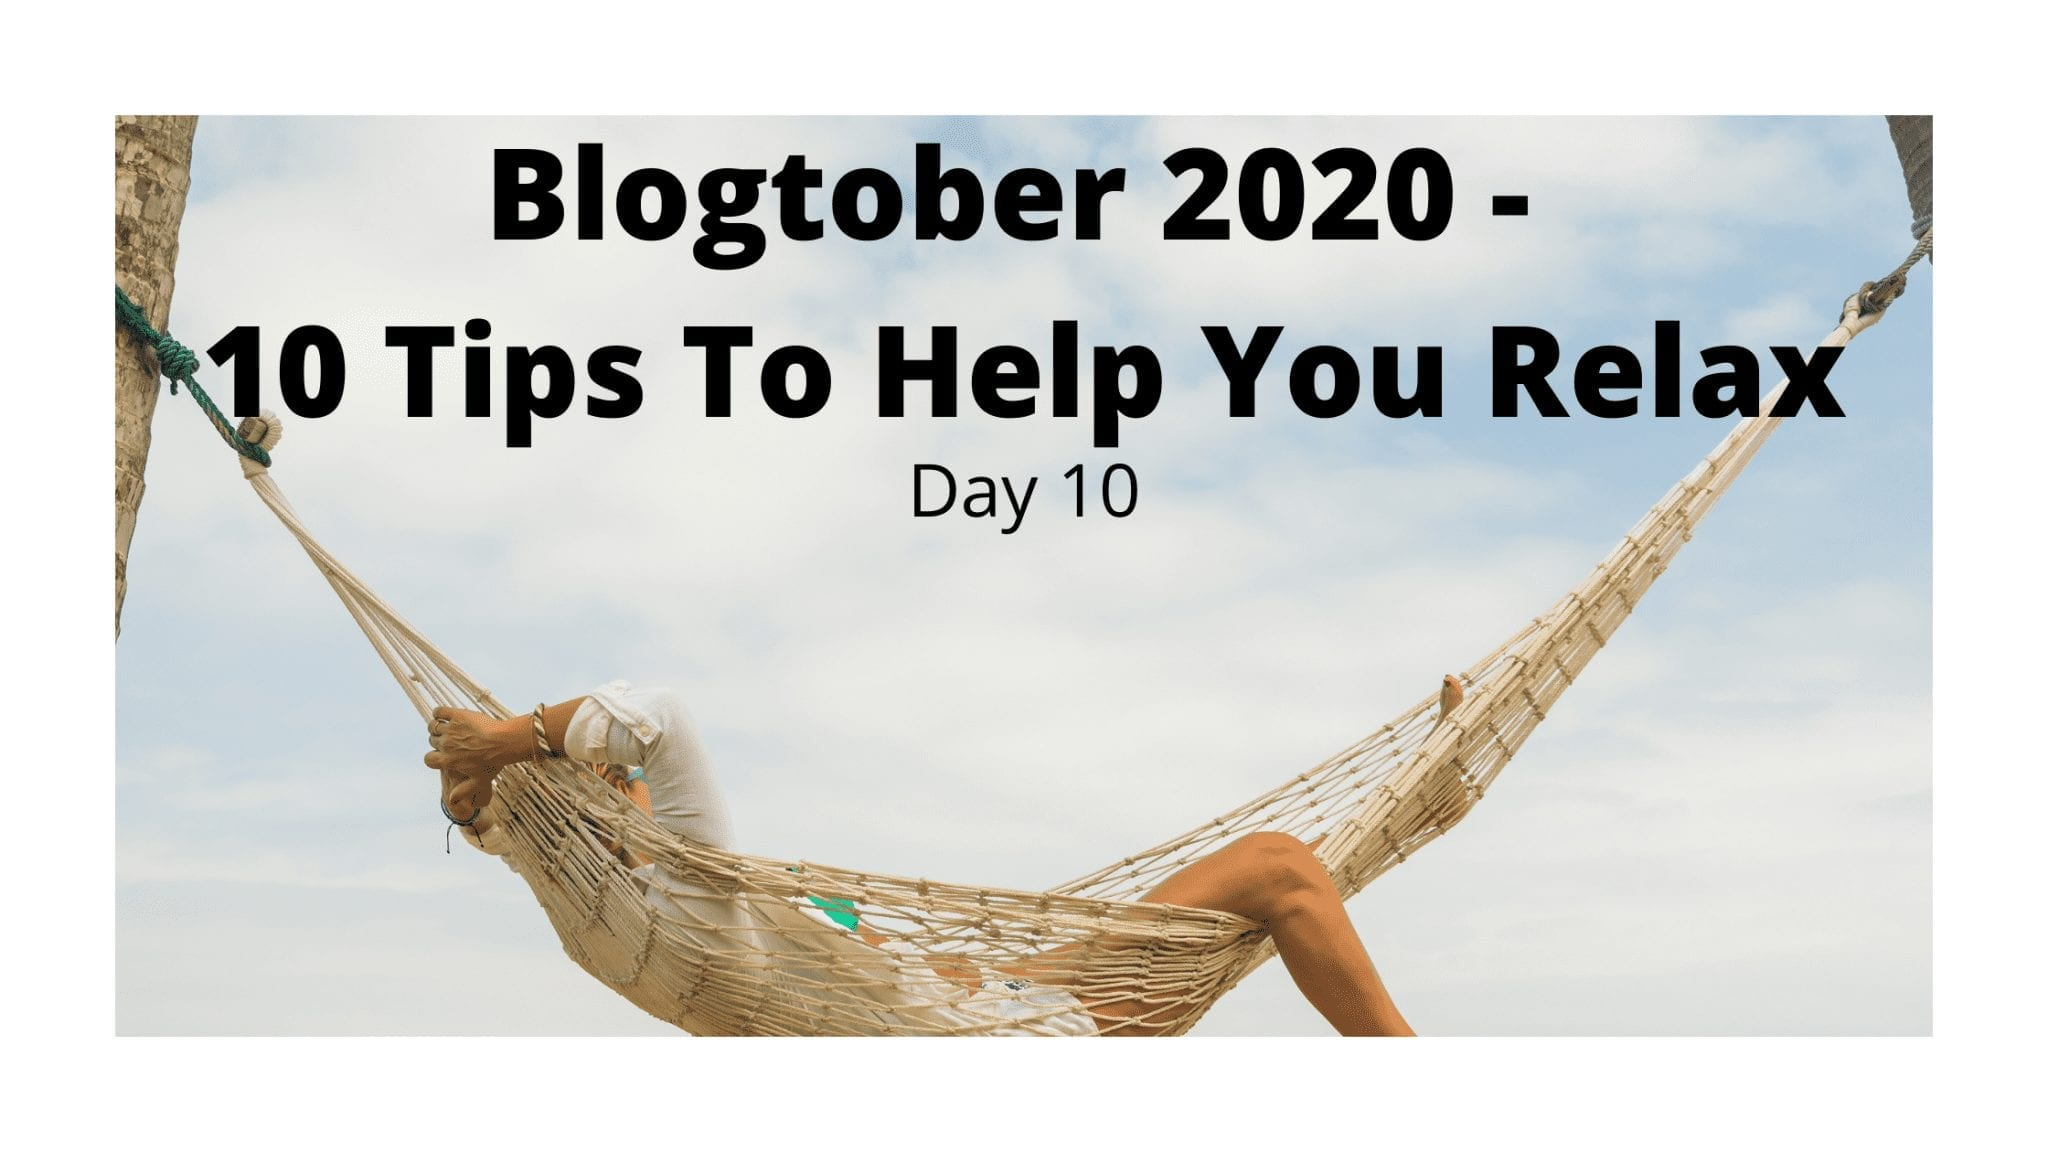 Blogtober 2020 - 10 Tips To Help You Relax